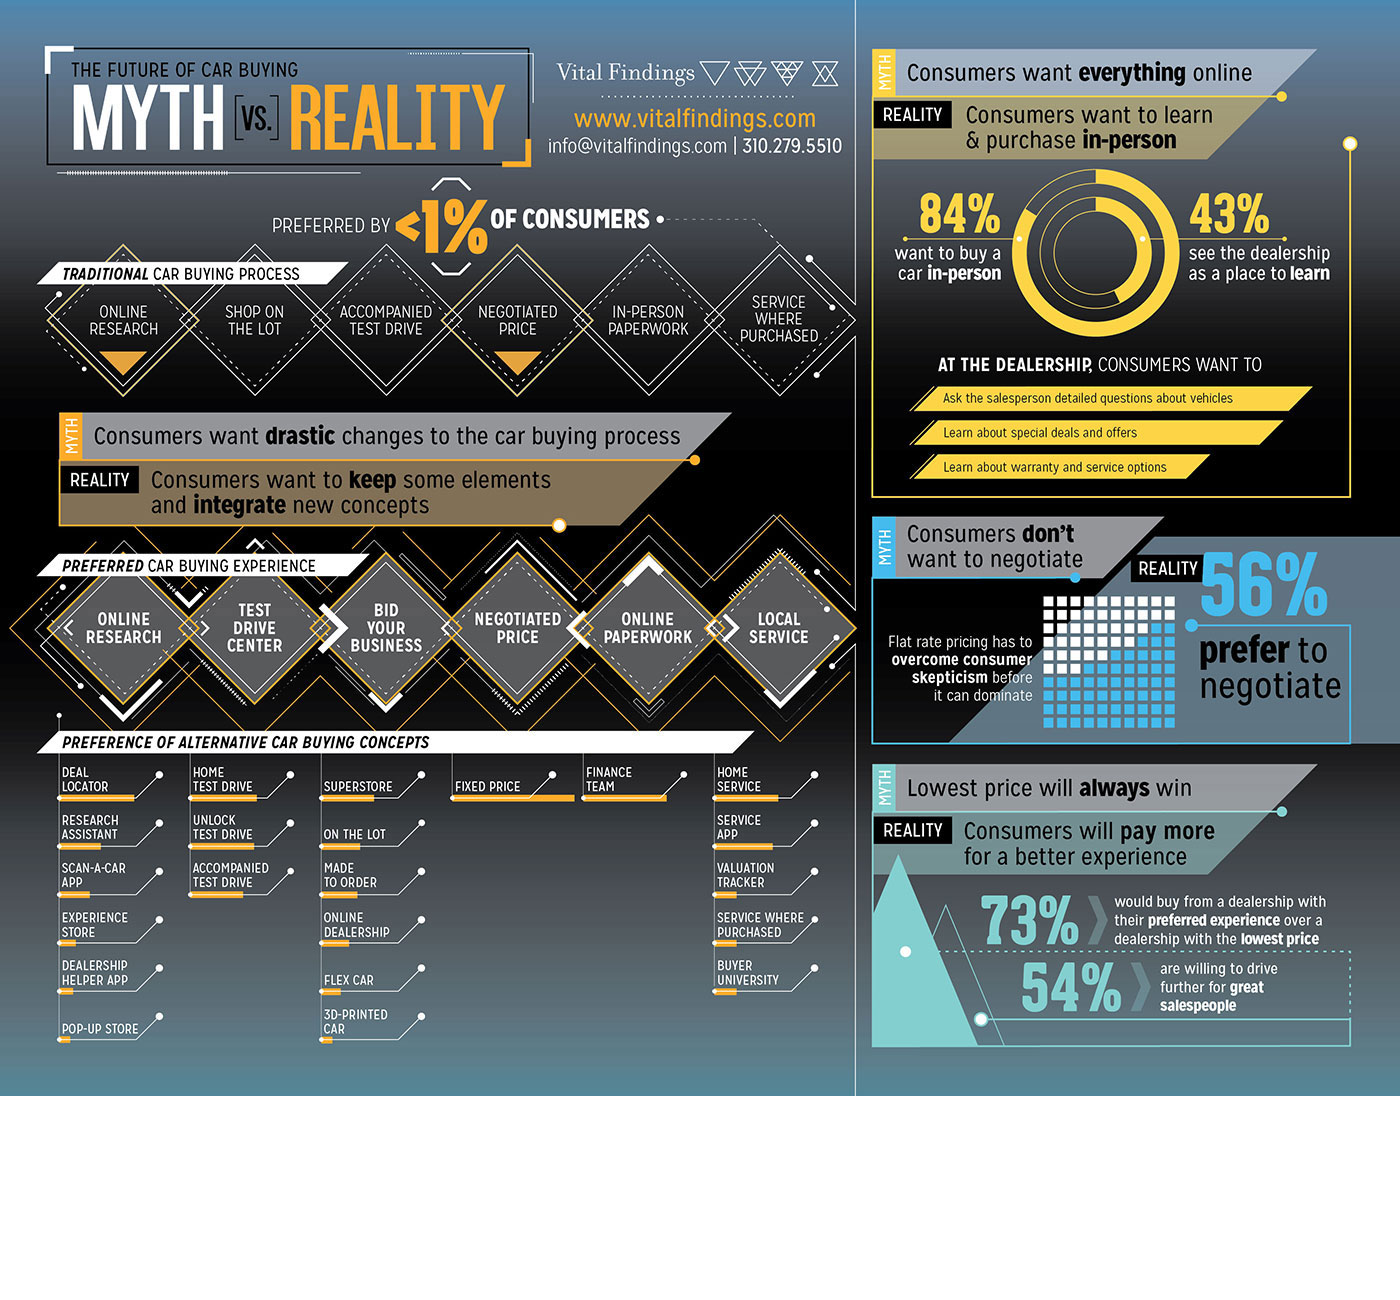 Market Research Infographic - Future of Car Buying